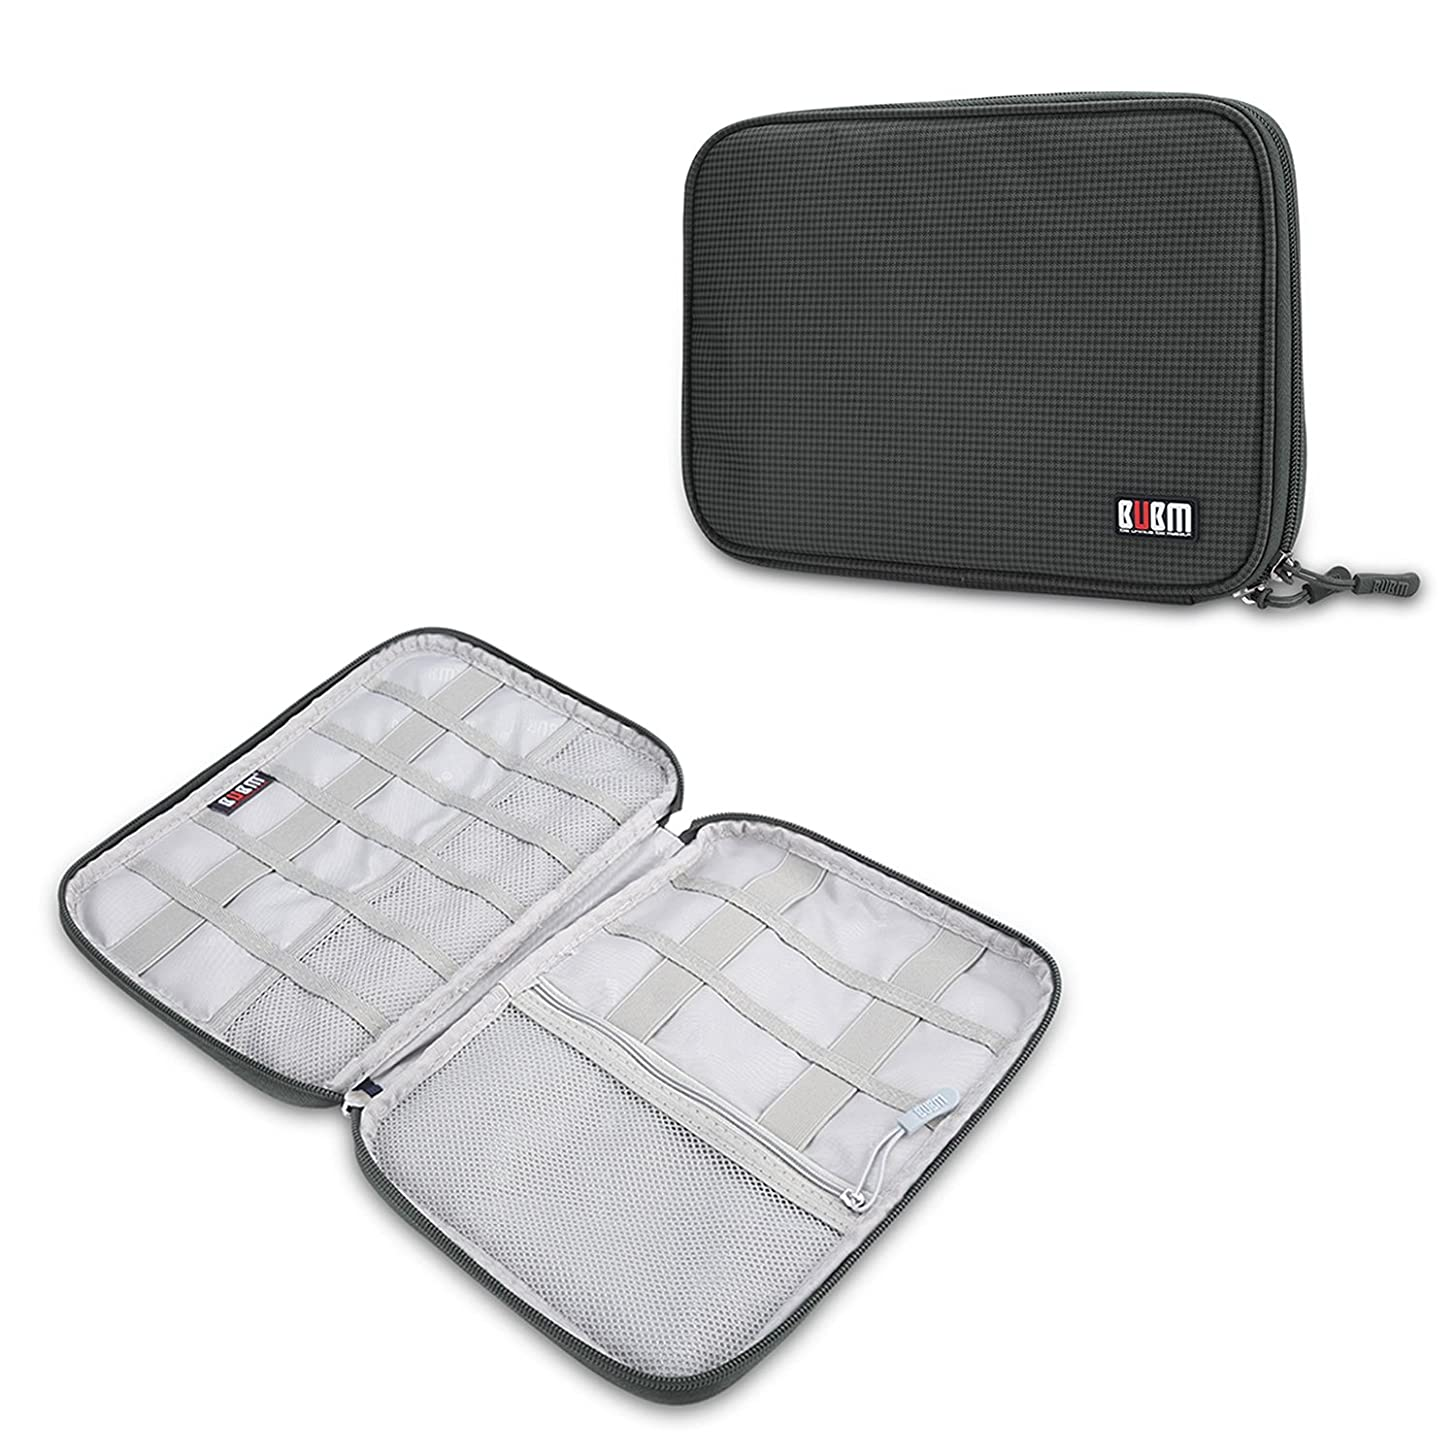 Travel Cable Electronic Accessories Organizer - Gadget Carrying Storage Bag, Pocket Juice Portable Charger for Hard Drives, USB Cables, Charger, iPhone (Gray)